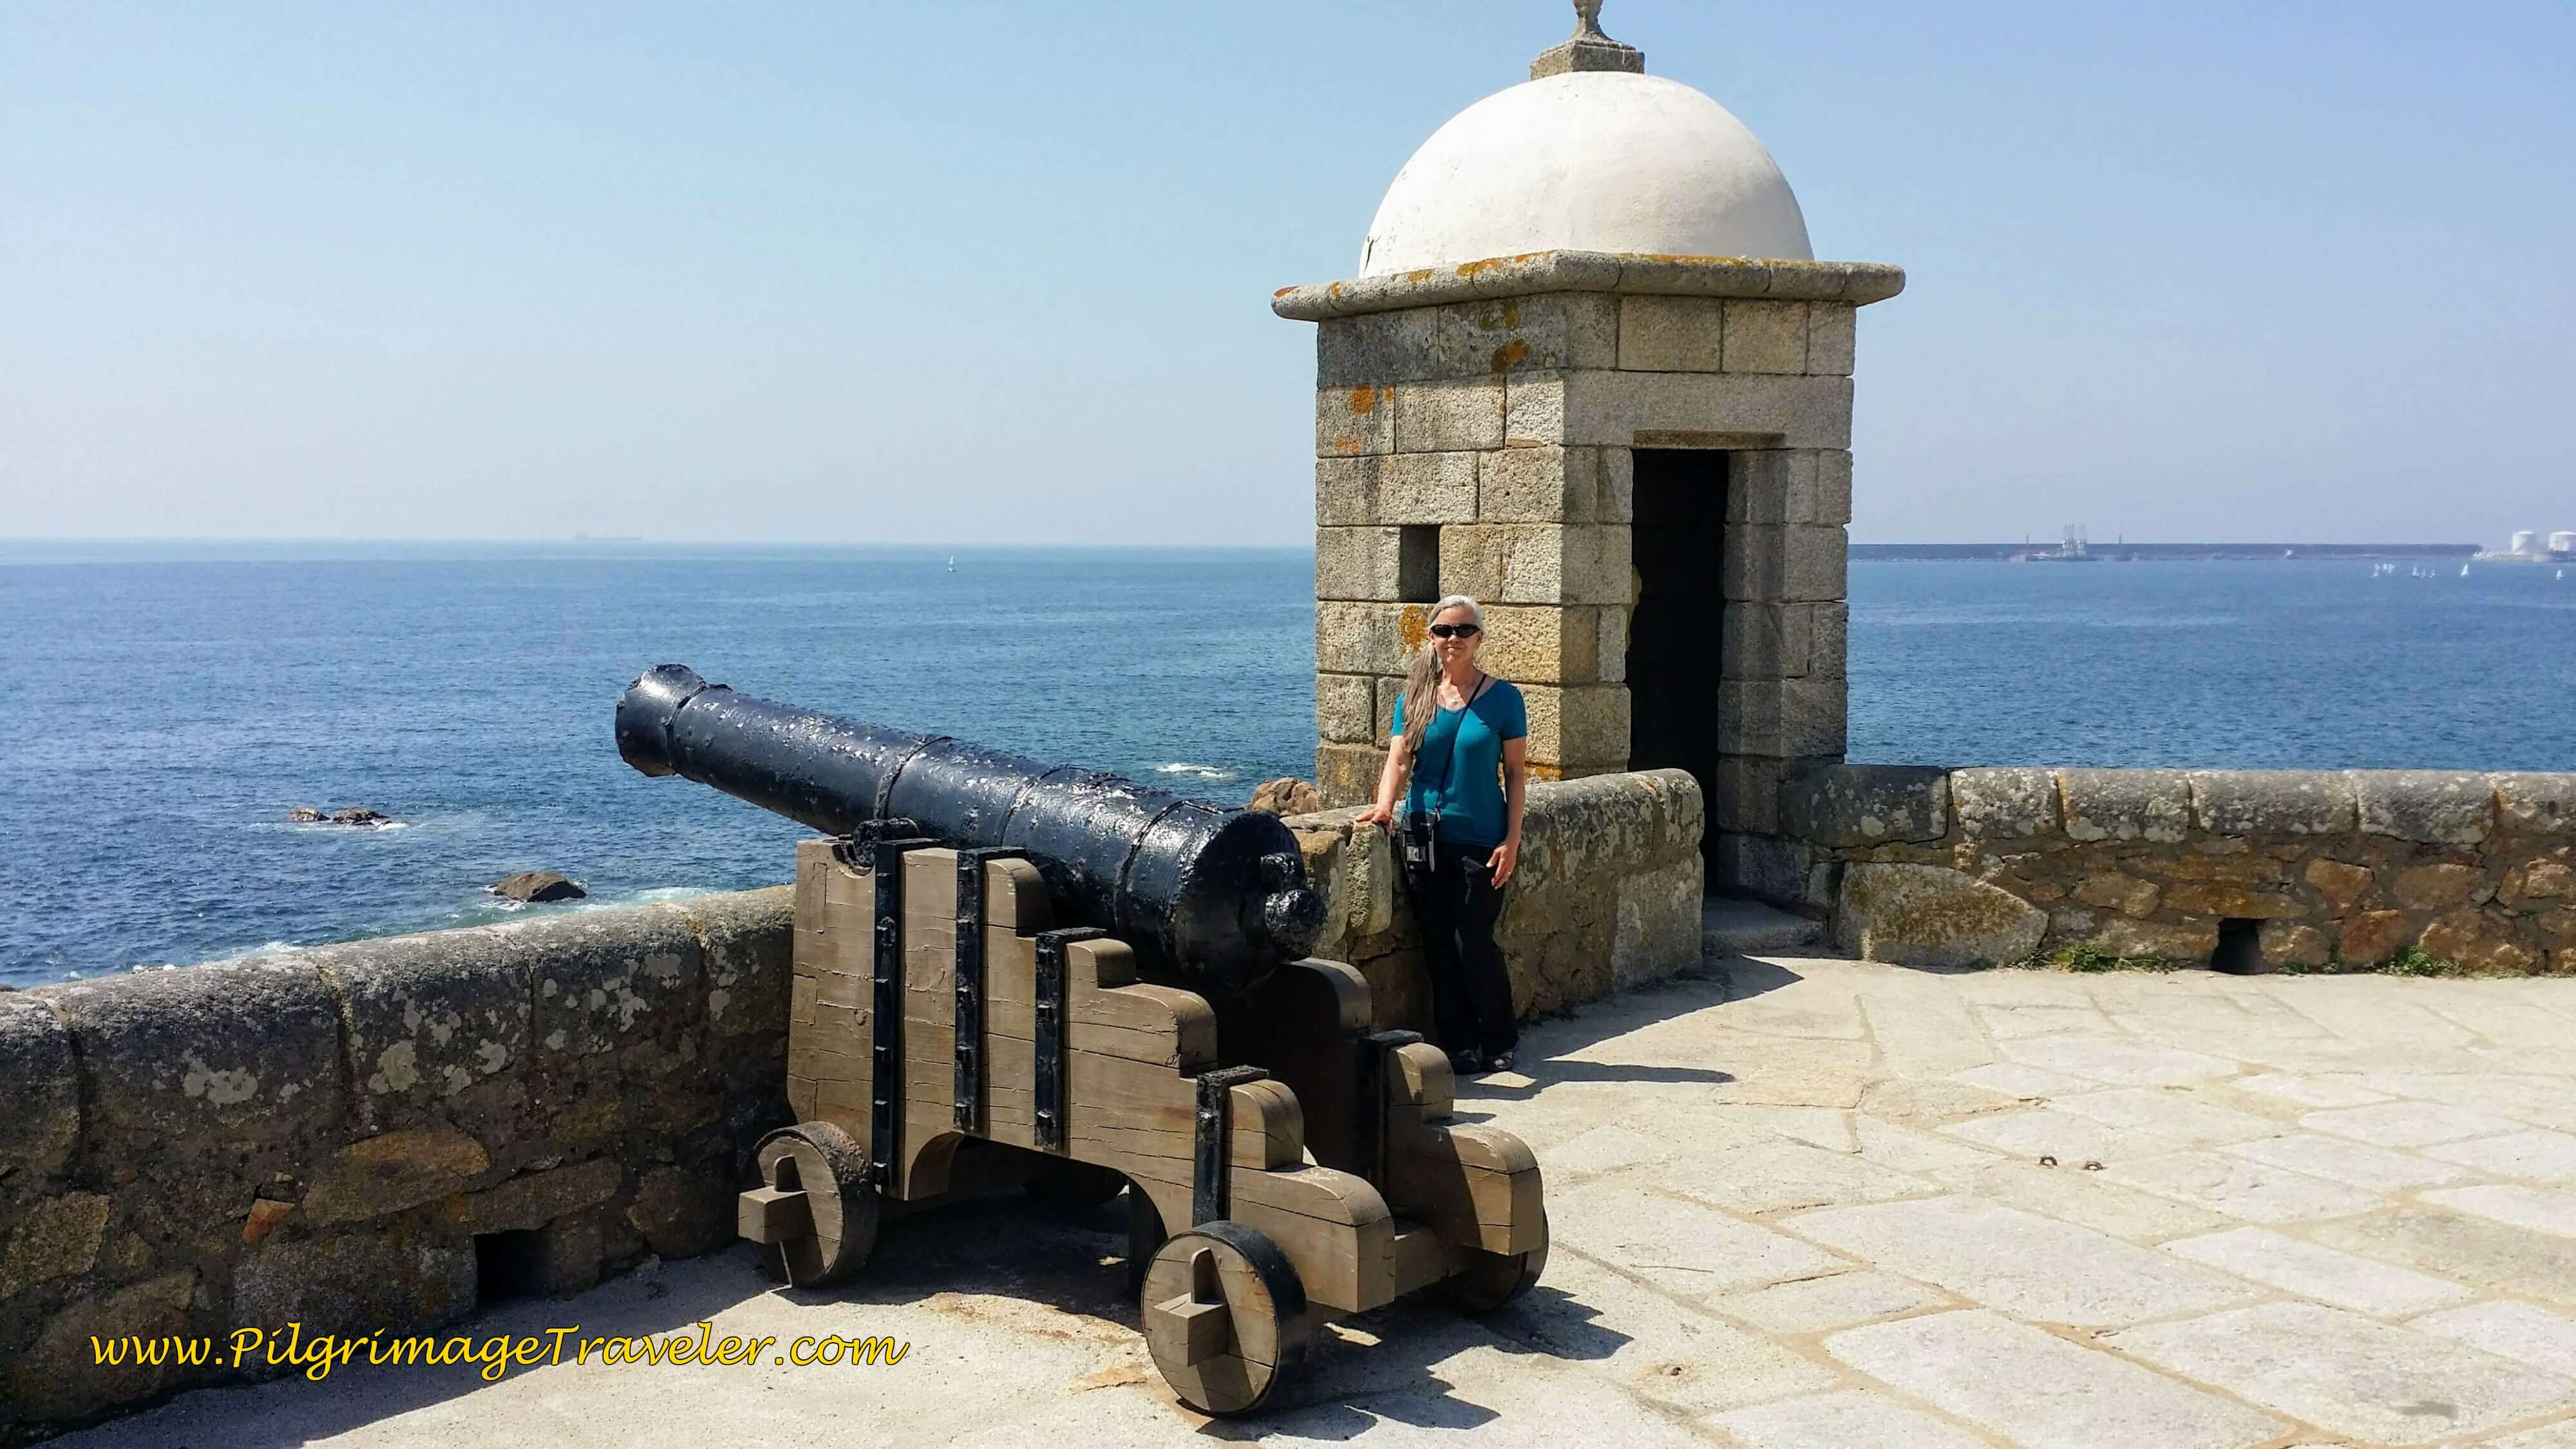 Elle with a Cannon by a Sentry Tower of the Castelo do Queijo in Porto, Portugal